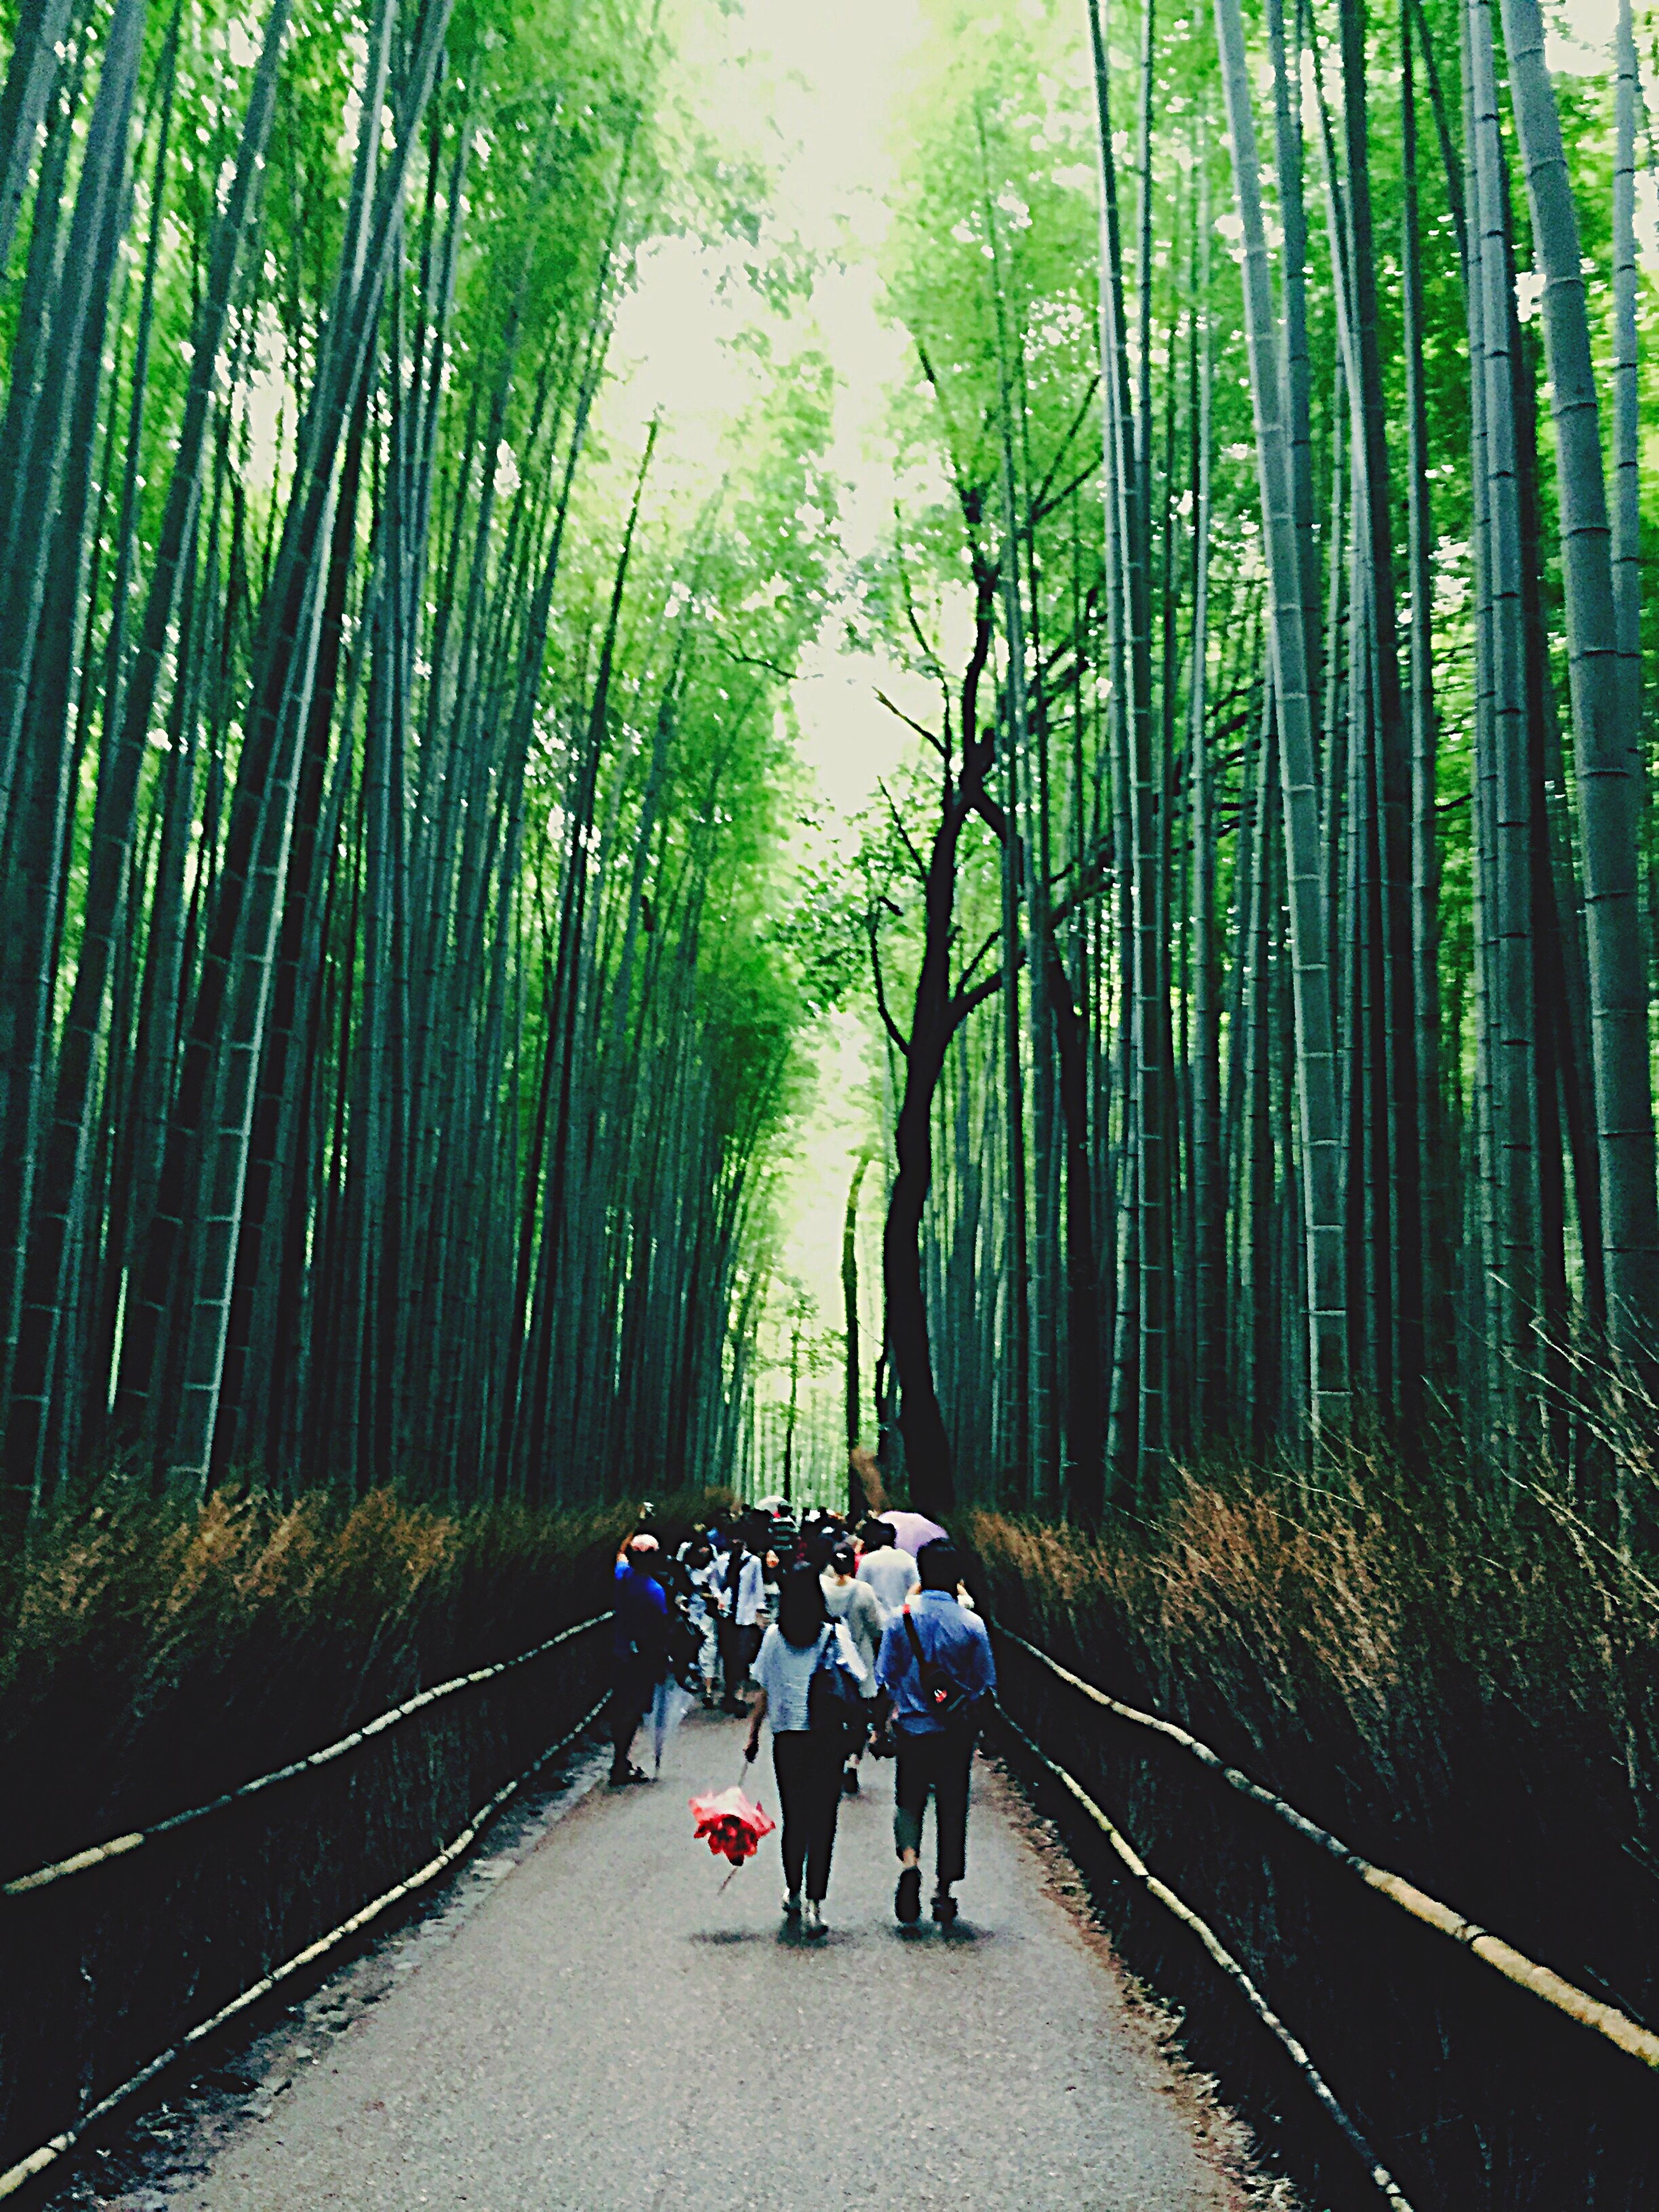 nature, real people, growth, tree, bamboo grove, beauty in nature, day, walking, outdoors, the way forward, tranquility, transportation, green color, road, bamboo - plant, full length, forest, leisure activity, women, men, lifestyles, togetherness, scenics, friendship, sky, people